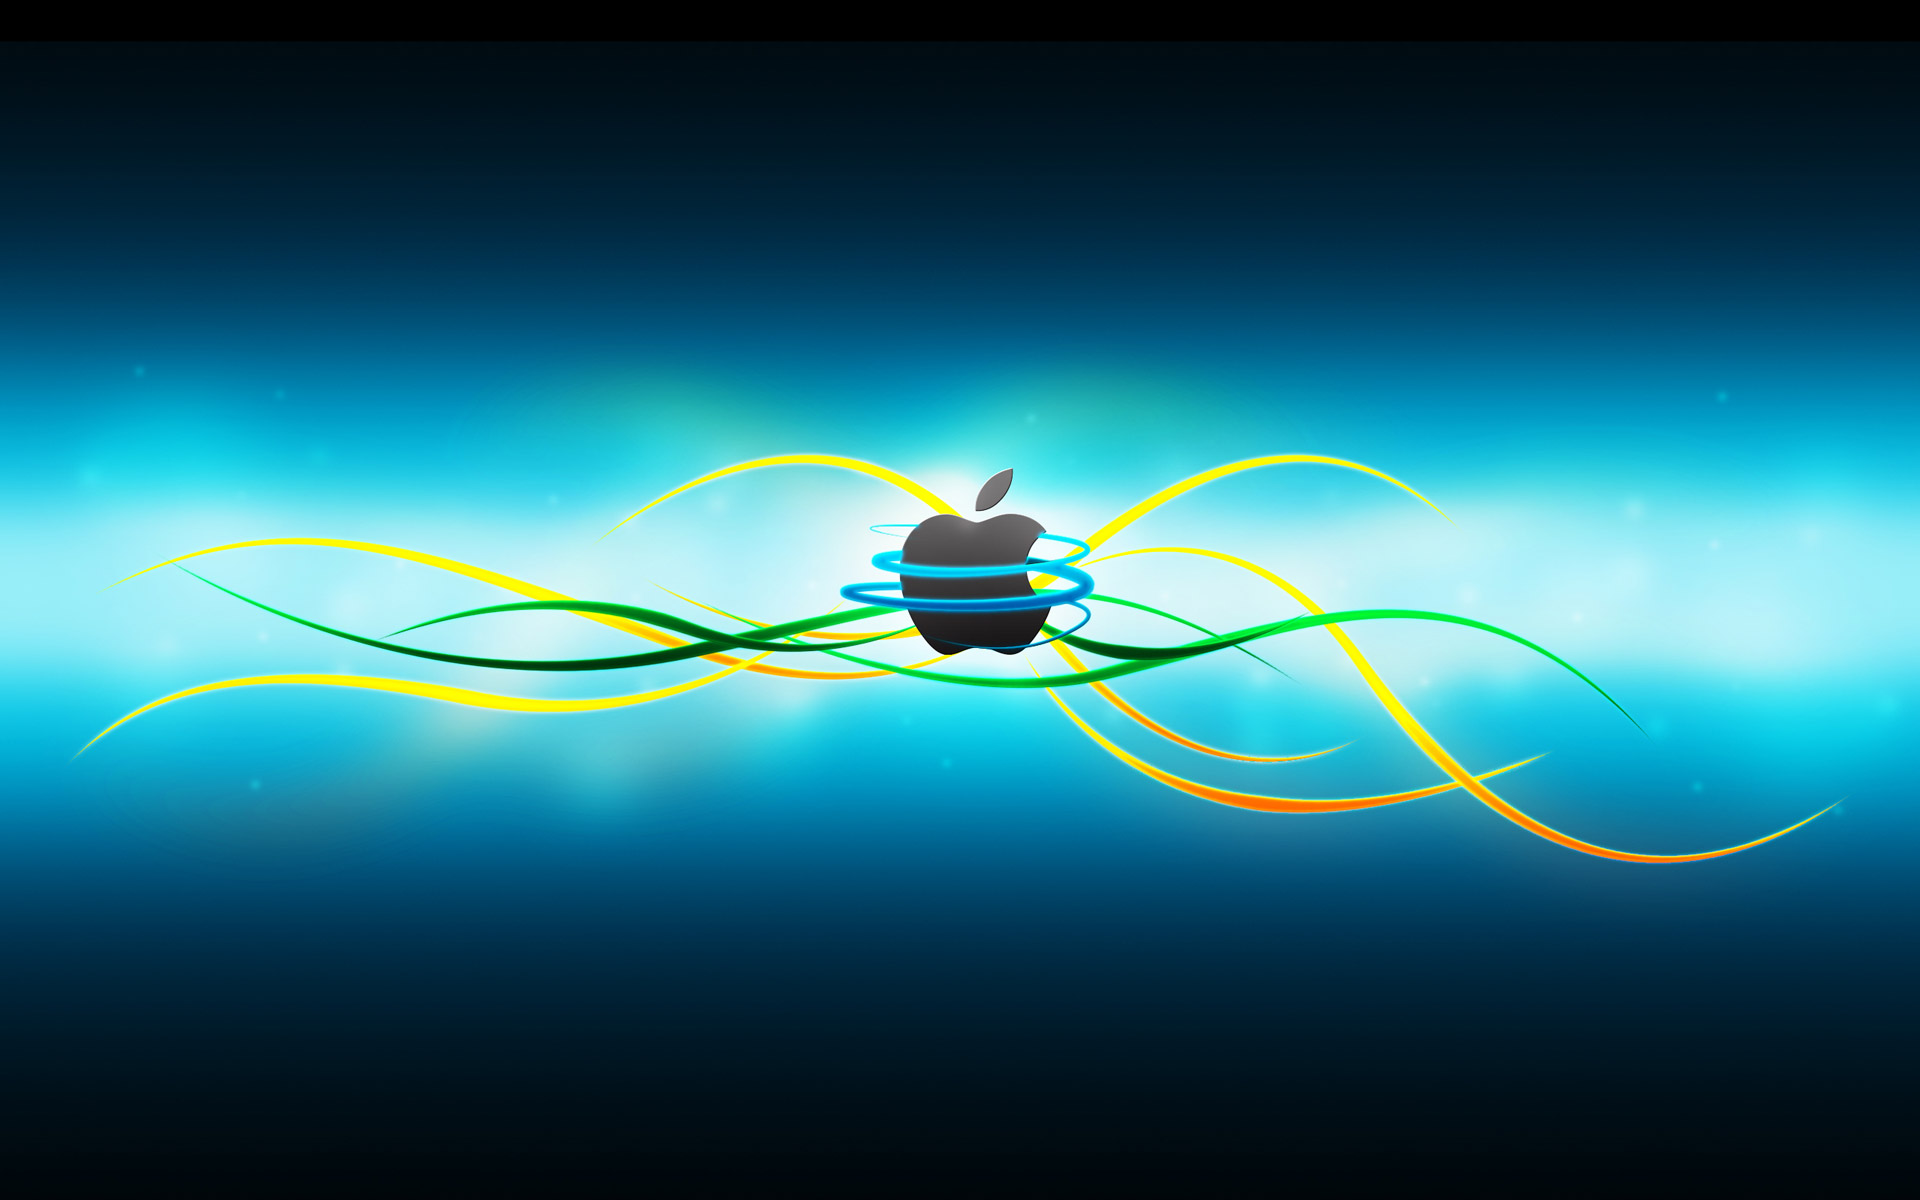 Sfondi desktop 3d apple wallpapers sfondi hd gratis for Sfondi 3d gratis